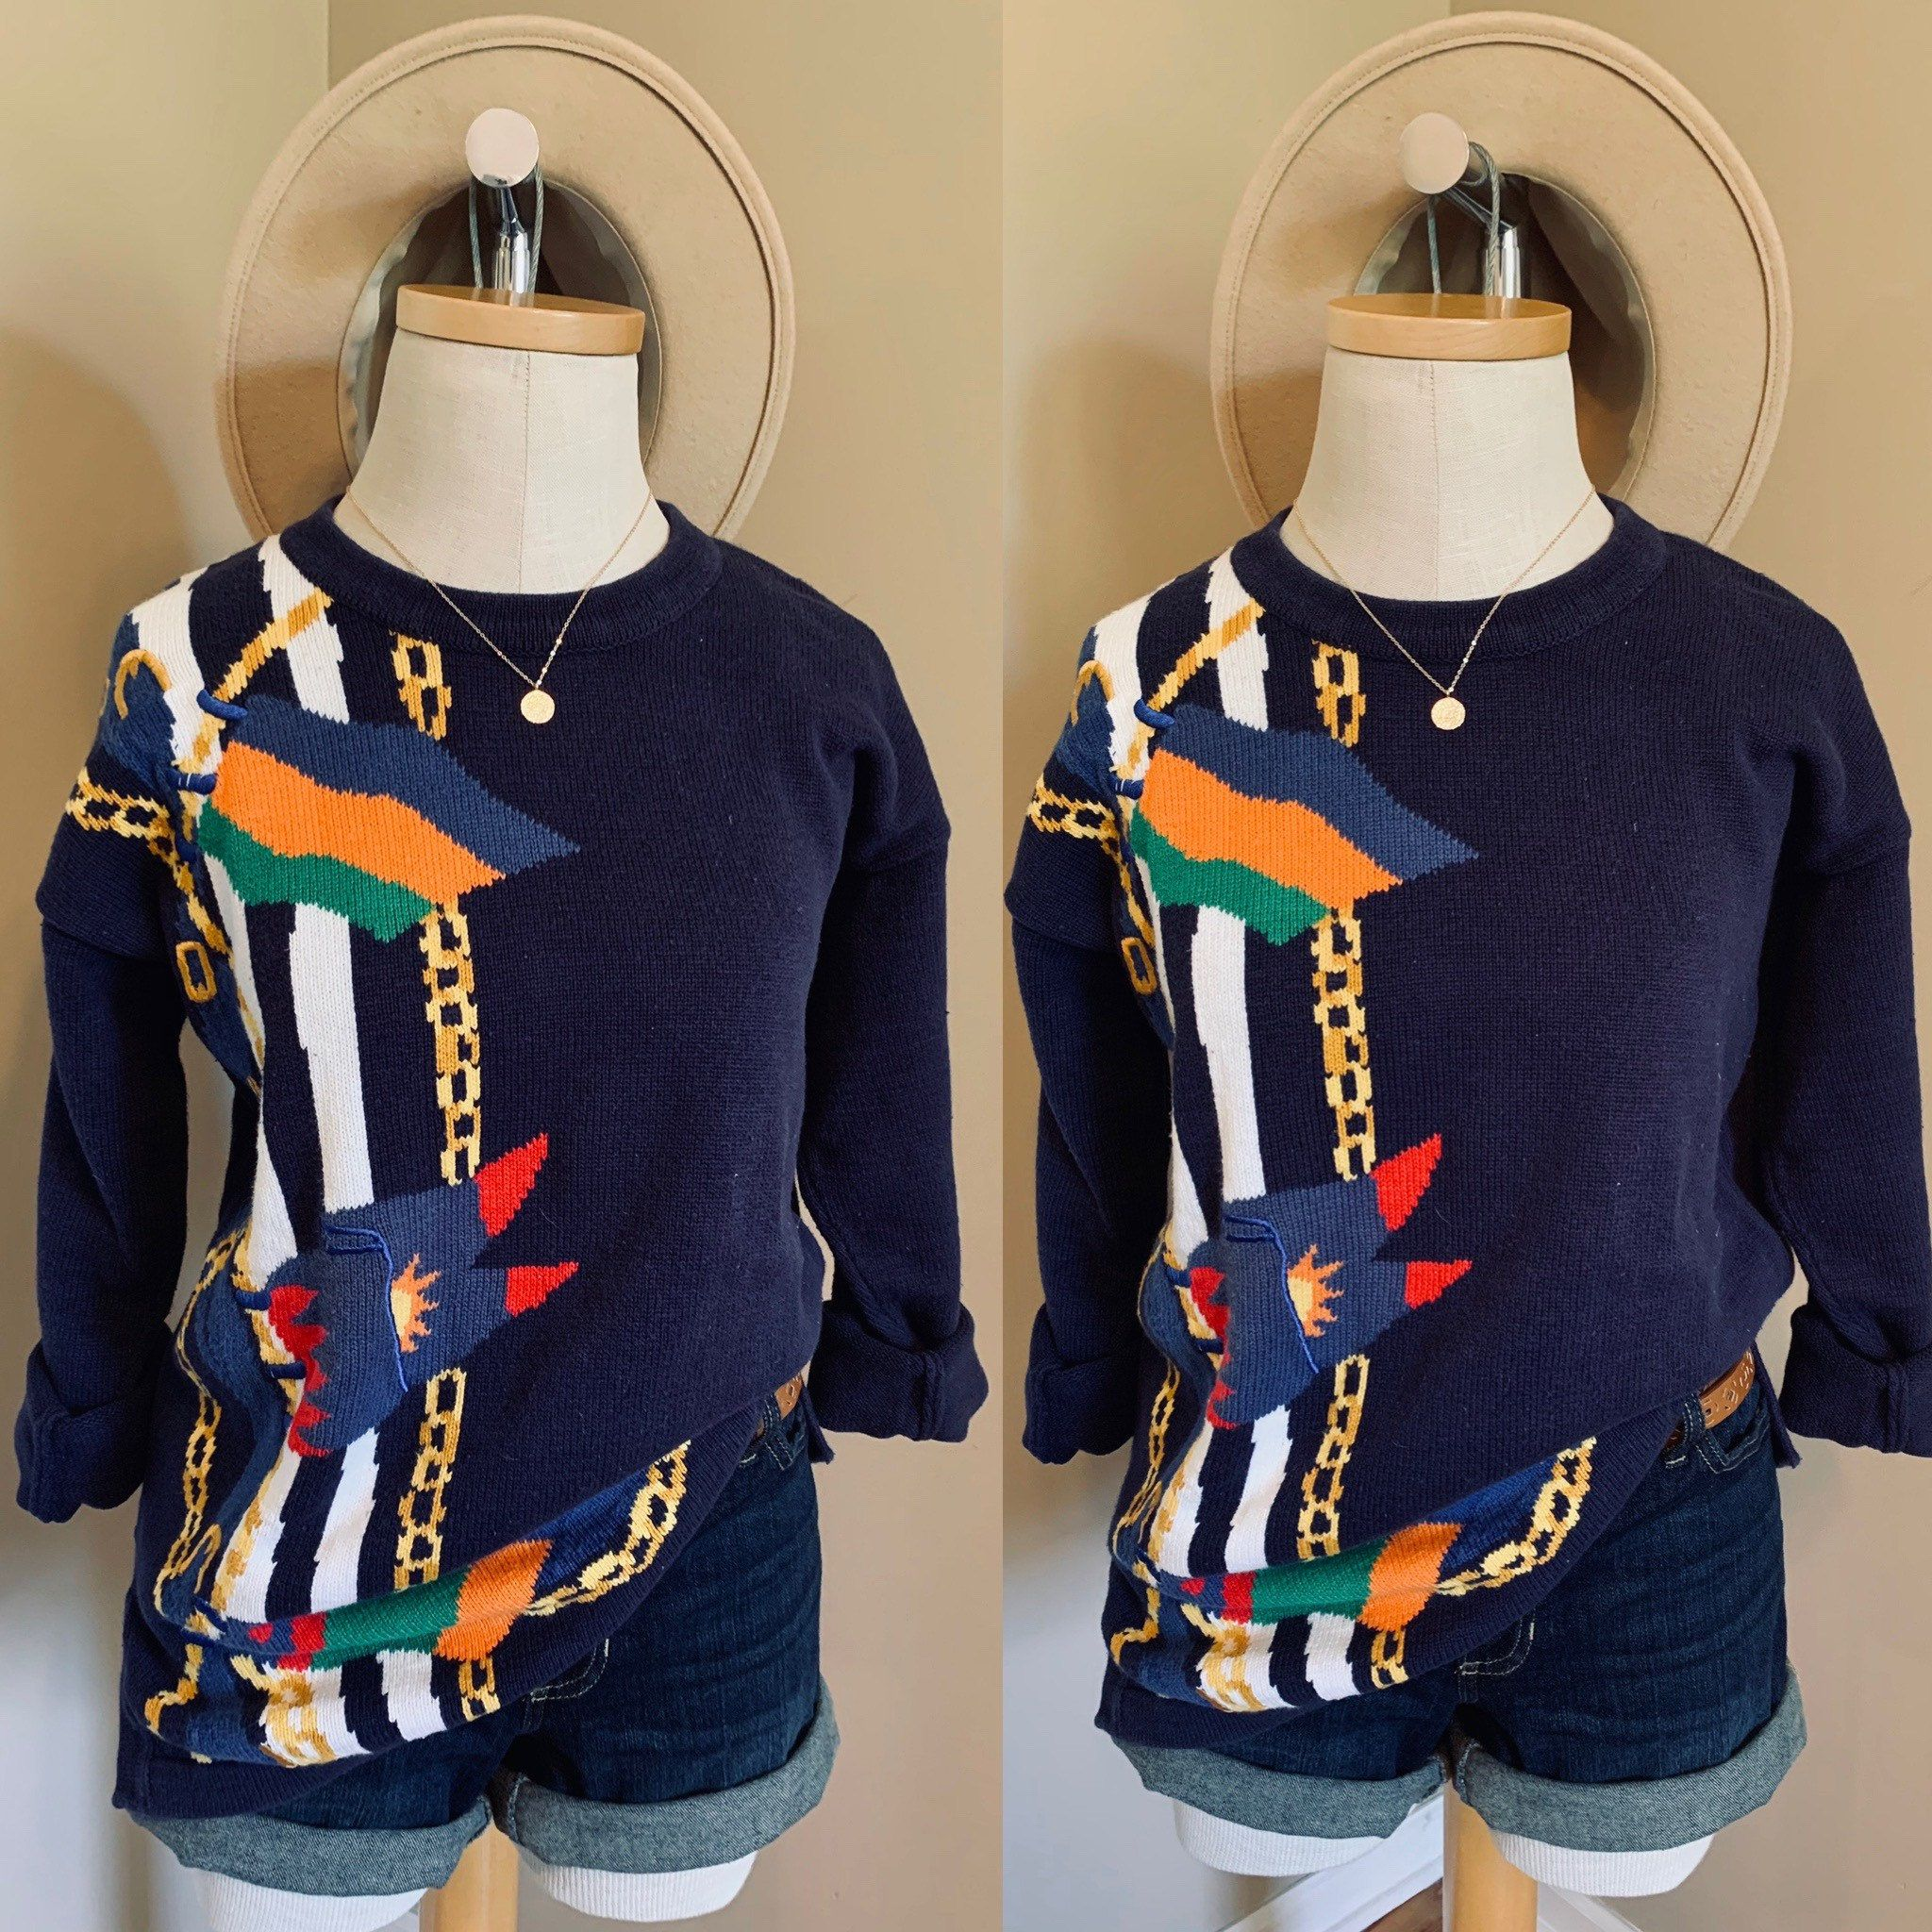 Talbots Nautical Sweater Etsy In 2020 Nautical Sweater Sweaters Vintage Nautical